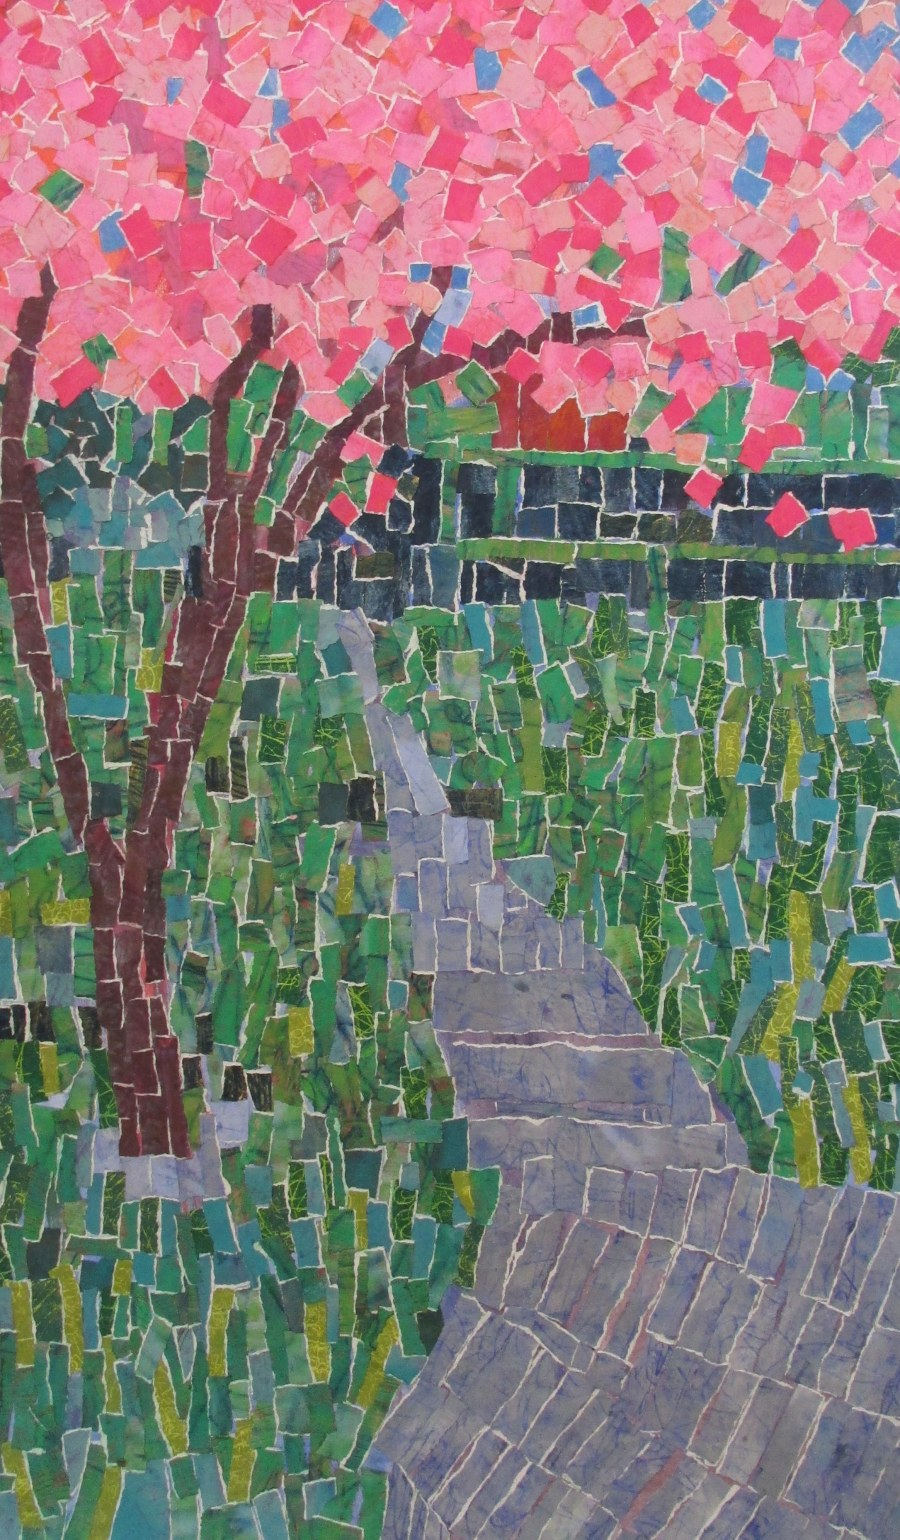 Sheryl Southwick, Cherry Blossom Tree on the Path, Collage of Handpainted Torn Paper